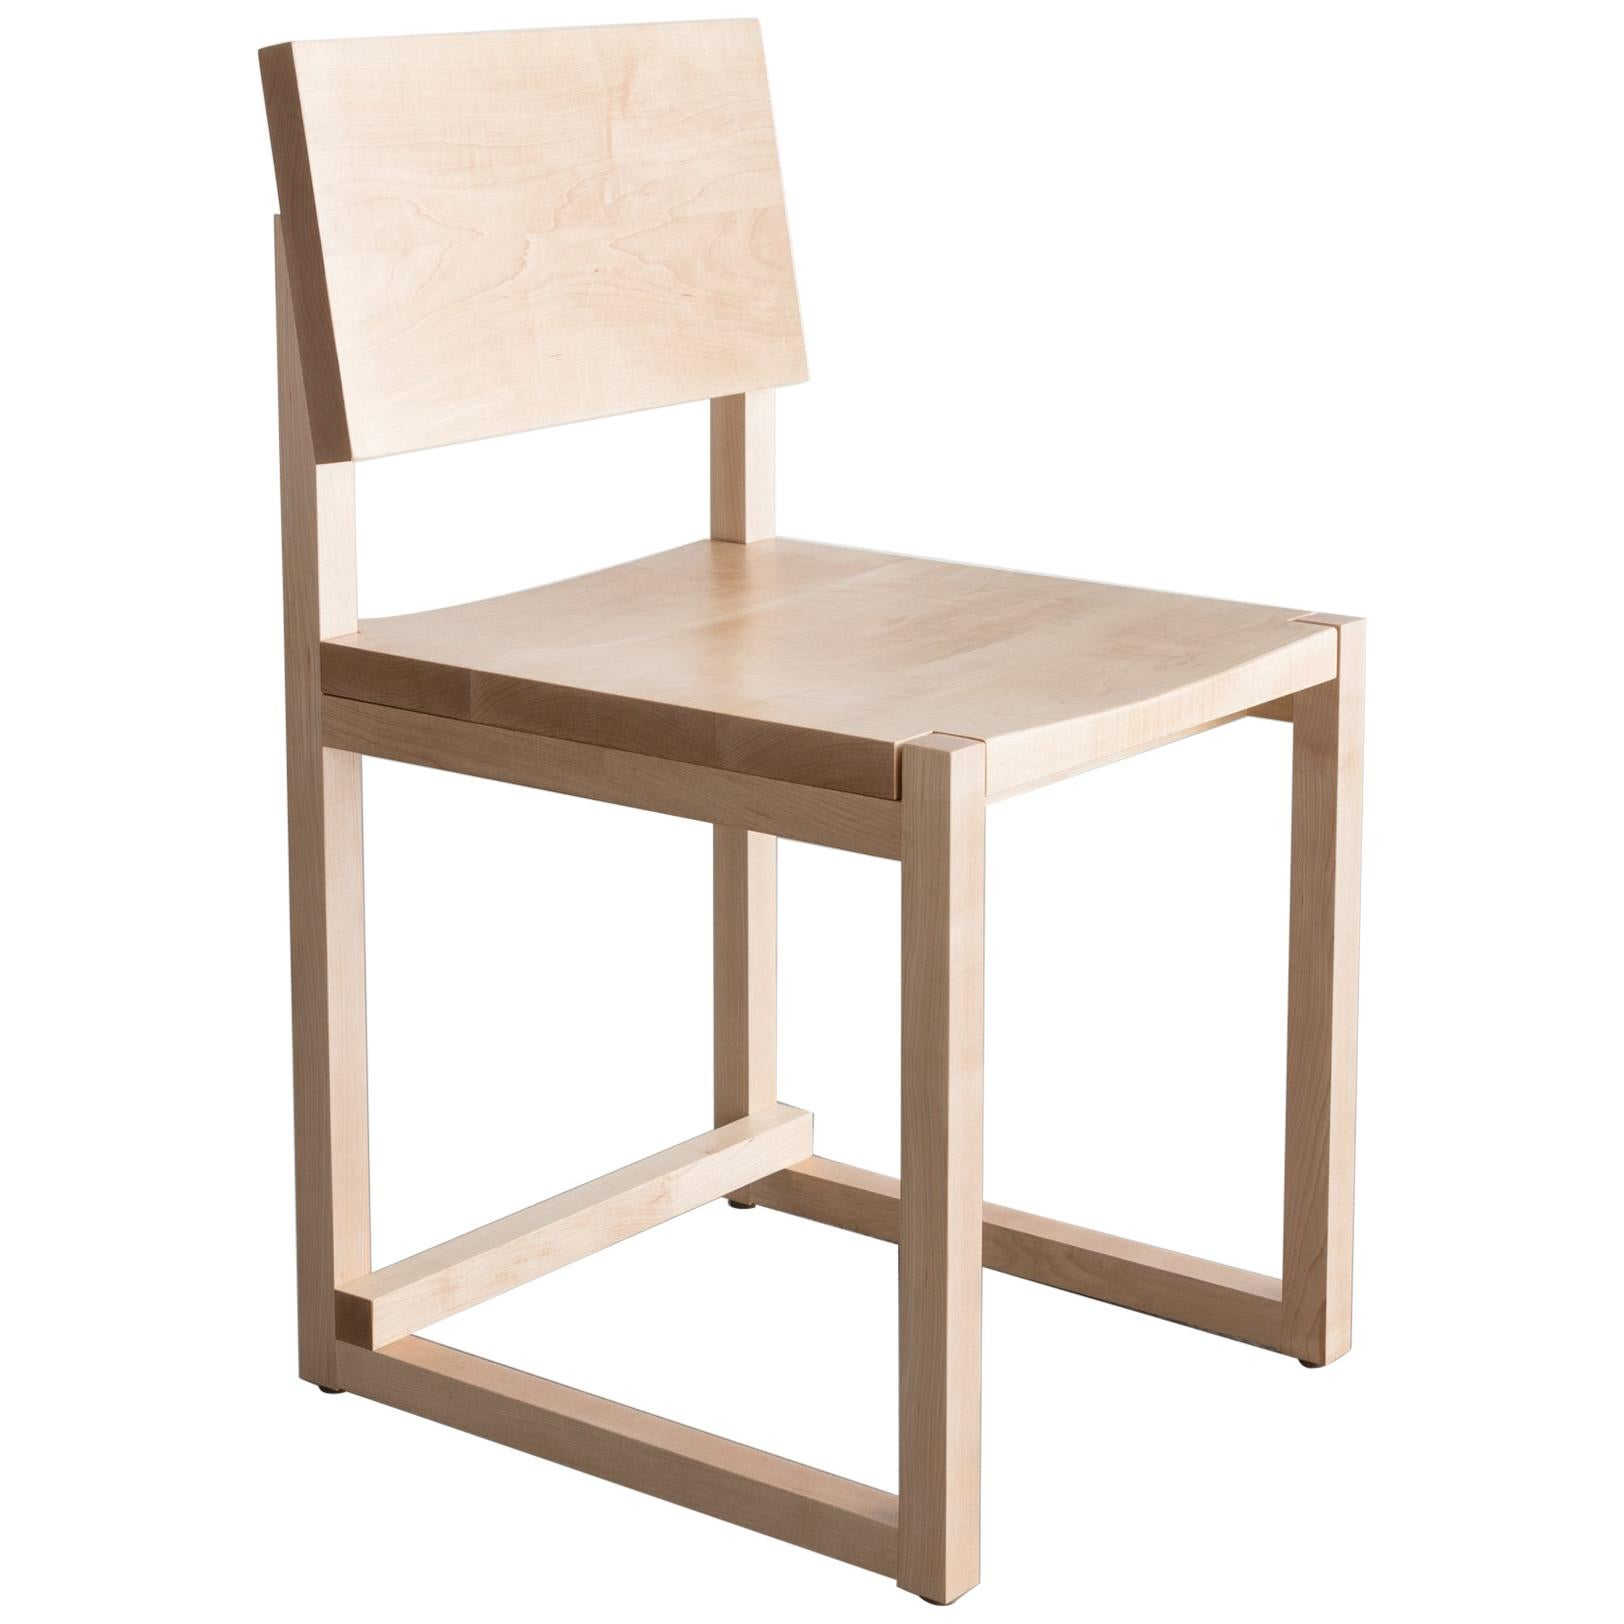 SQ Dining Chair, Maple, Hardwood, Side Chair